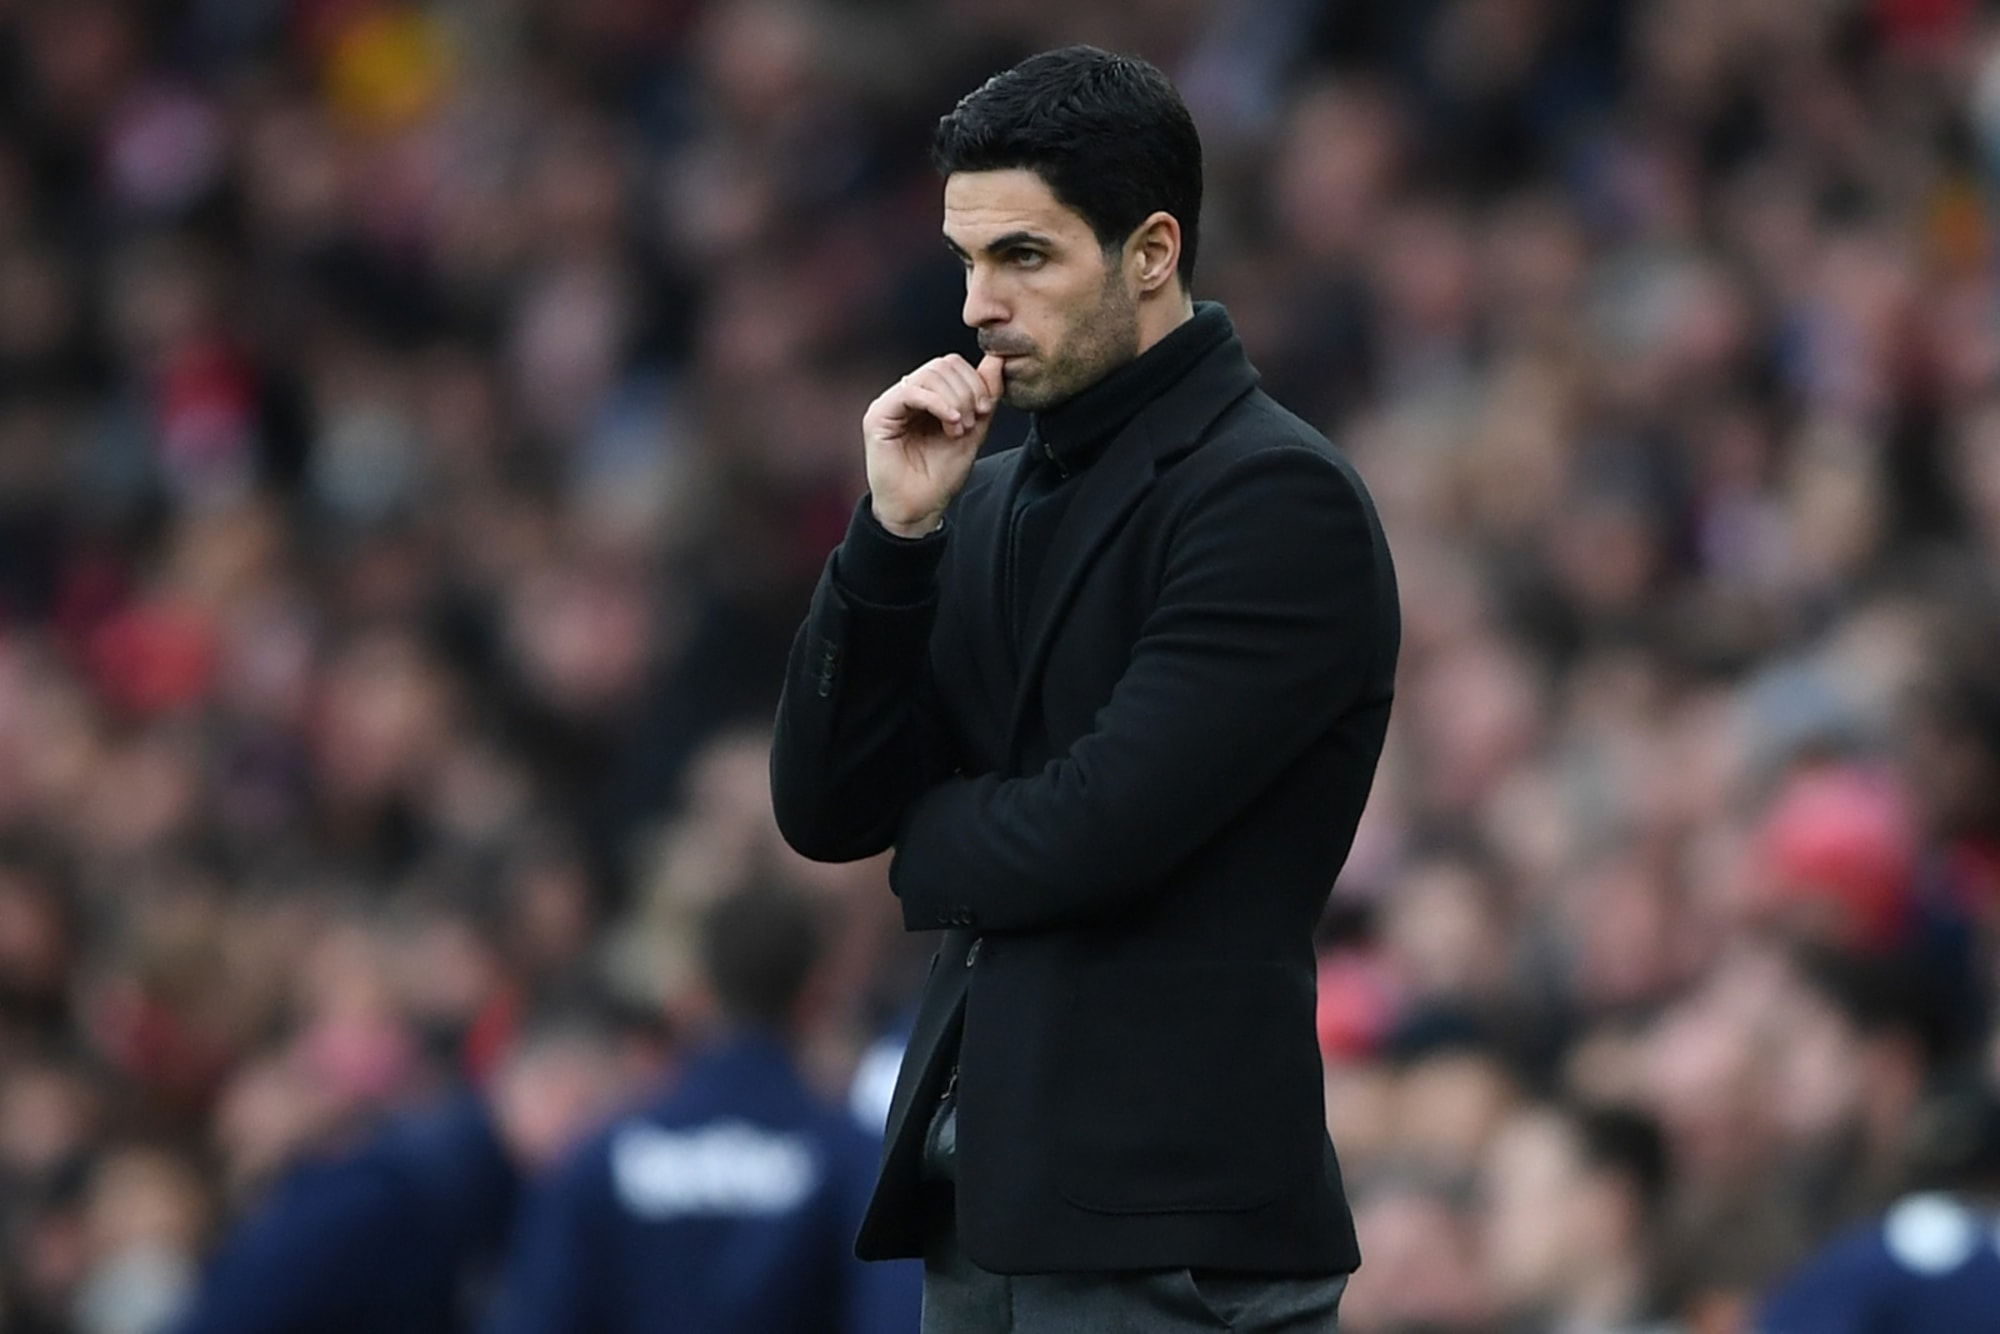 Trouble may be brewing between Arsenal and Mikel Arteta